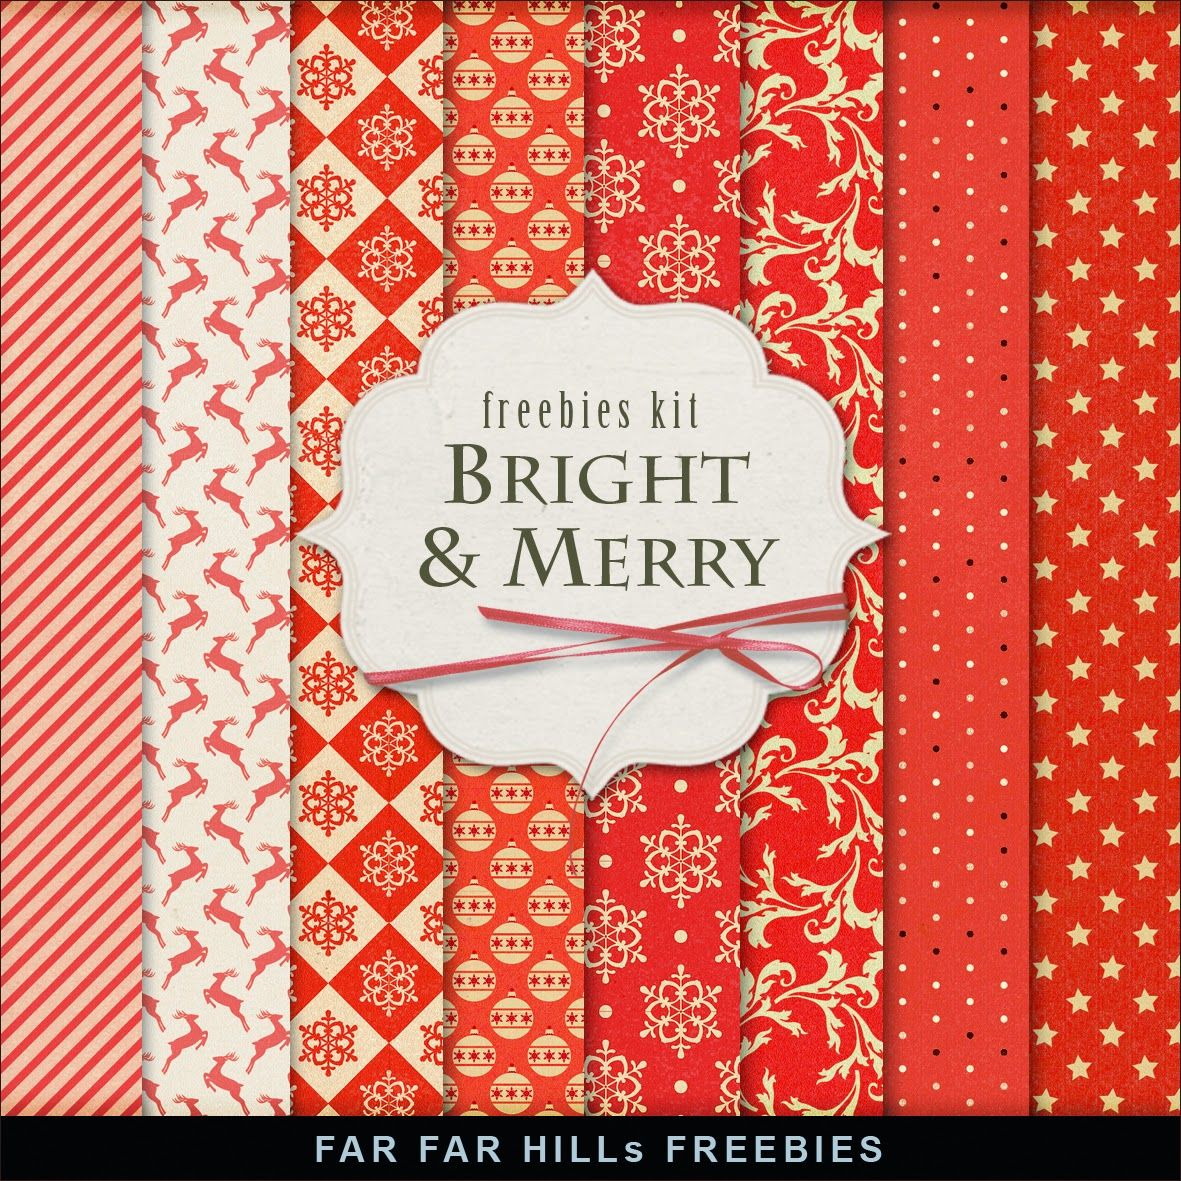 Far Far Hill: New Freebies Winter Backgrounds - Bright & Merry #winterbackground